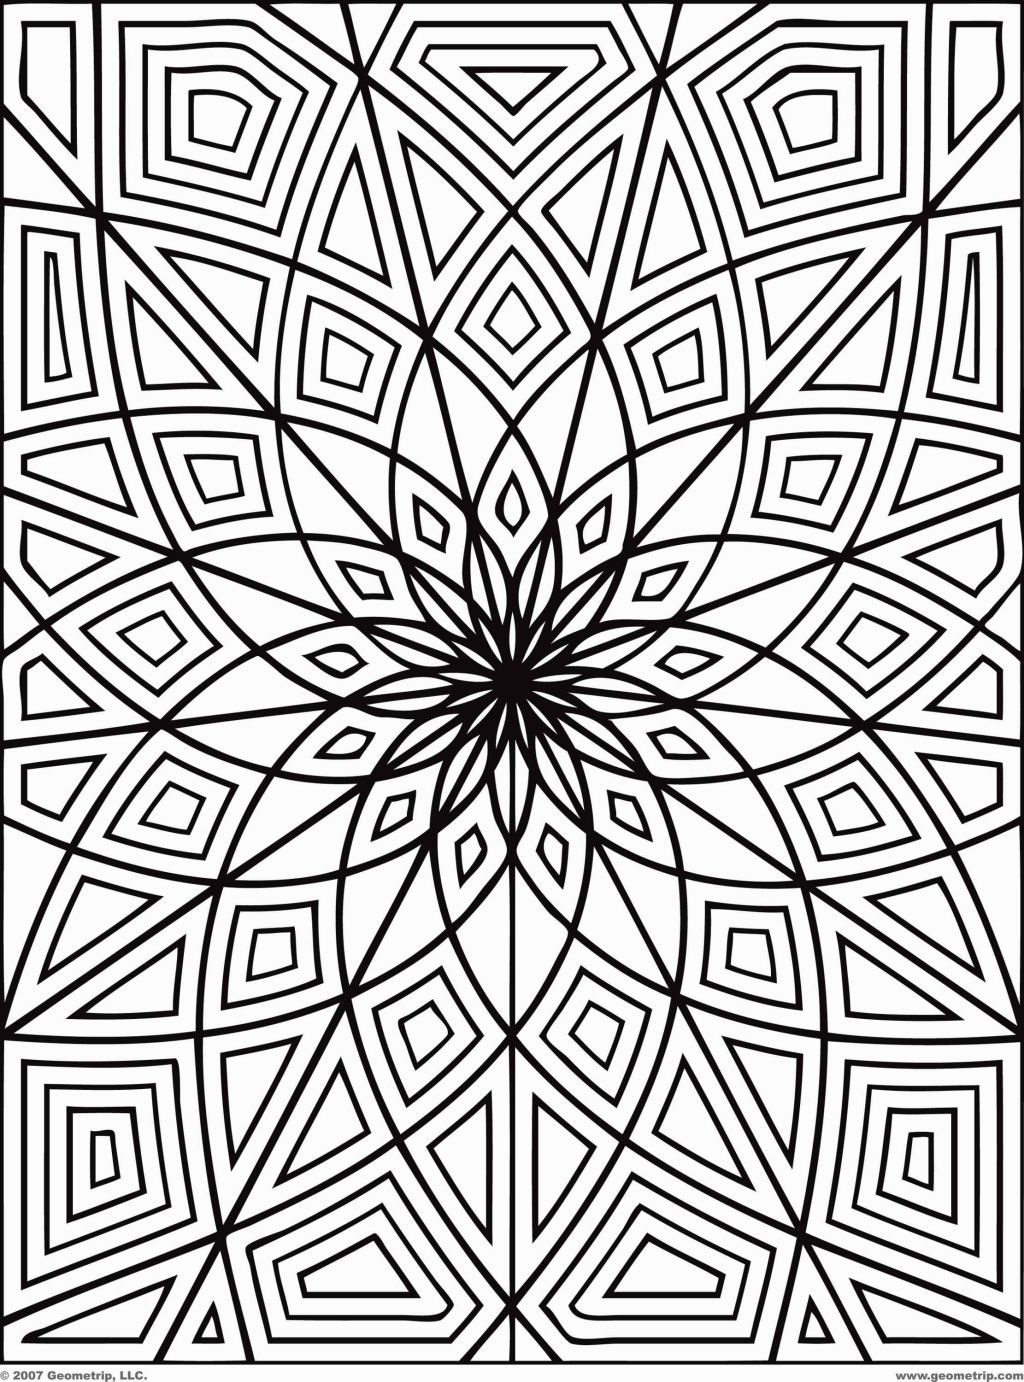 Printable adults coloring pages coloring pages pinterest adult